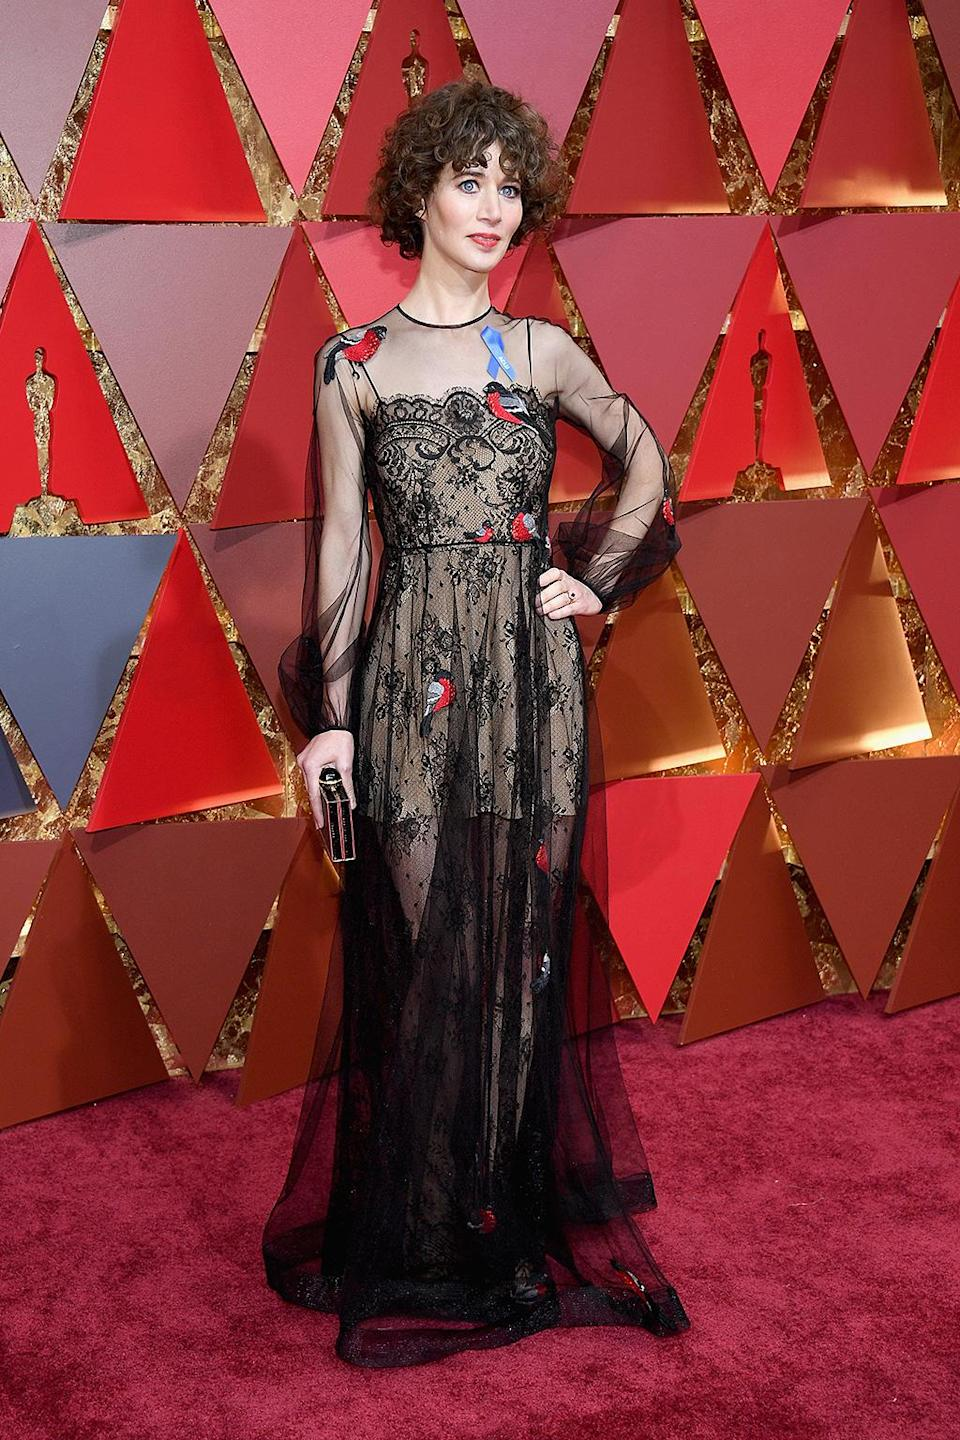 <p>Director Miranda July attends the 89th Annual Academy Awards at Hollywood & Highland Center on February 26, 2017 in Hollywood, California. (Photo by Kevork Djansezian/Getty Images) </p>